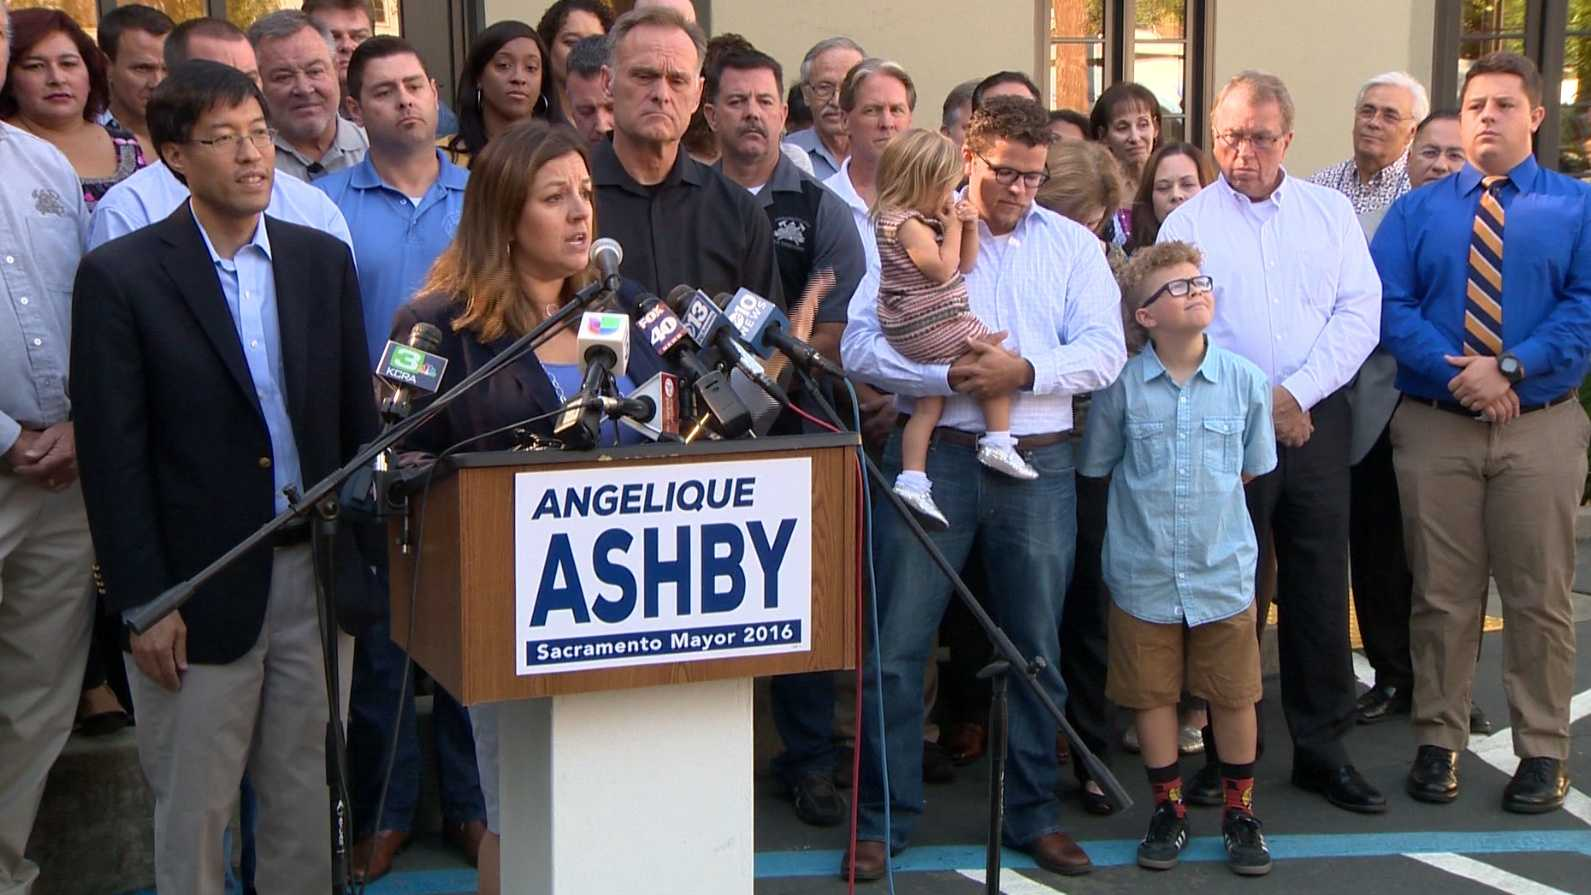 Sacramento Mayor Pro Tem Angelique Ashby announced her candidacy for mayor on Wednesday, Oct. 21, 2015, less than 24 hours after Mayor Kevin Johnson announced he will not seek re-election.